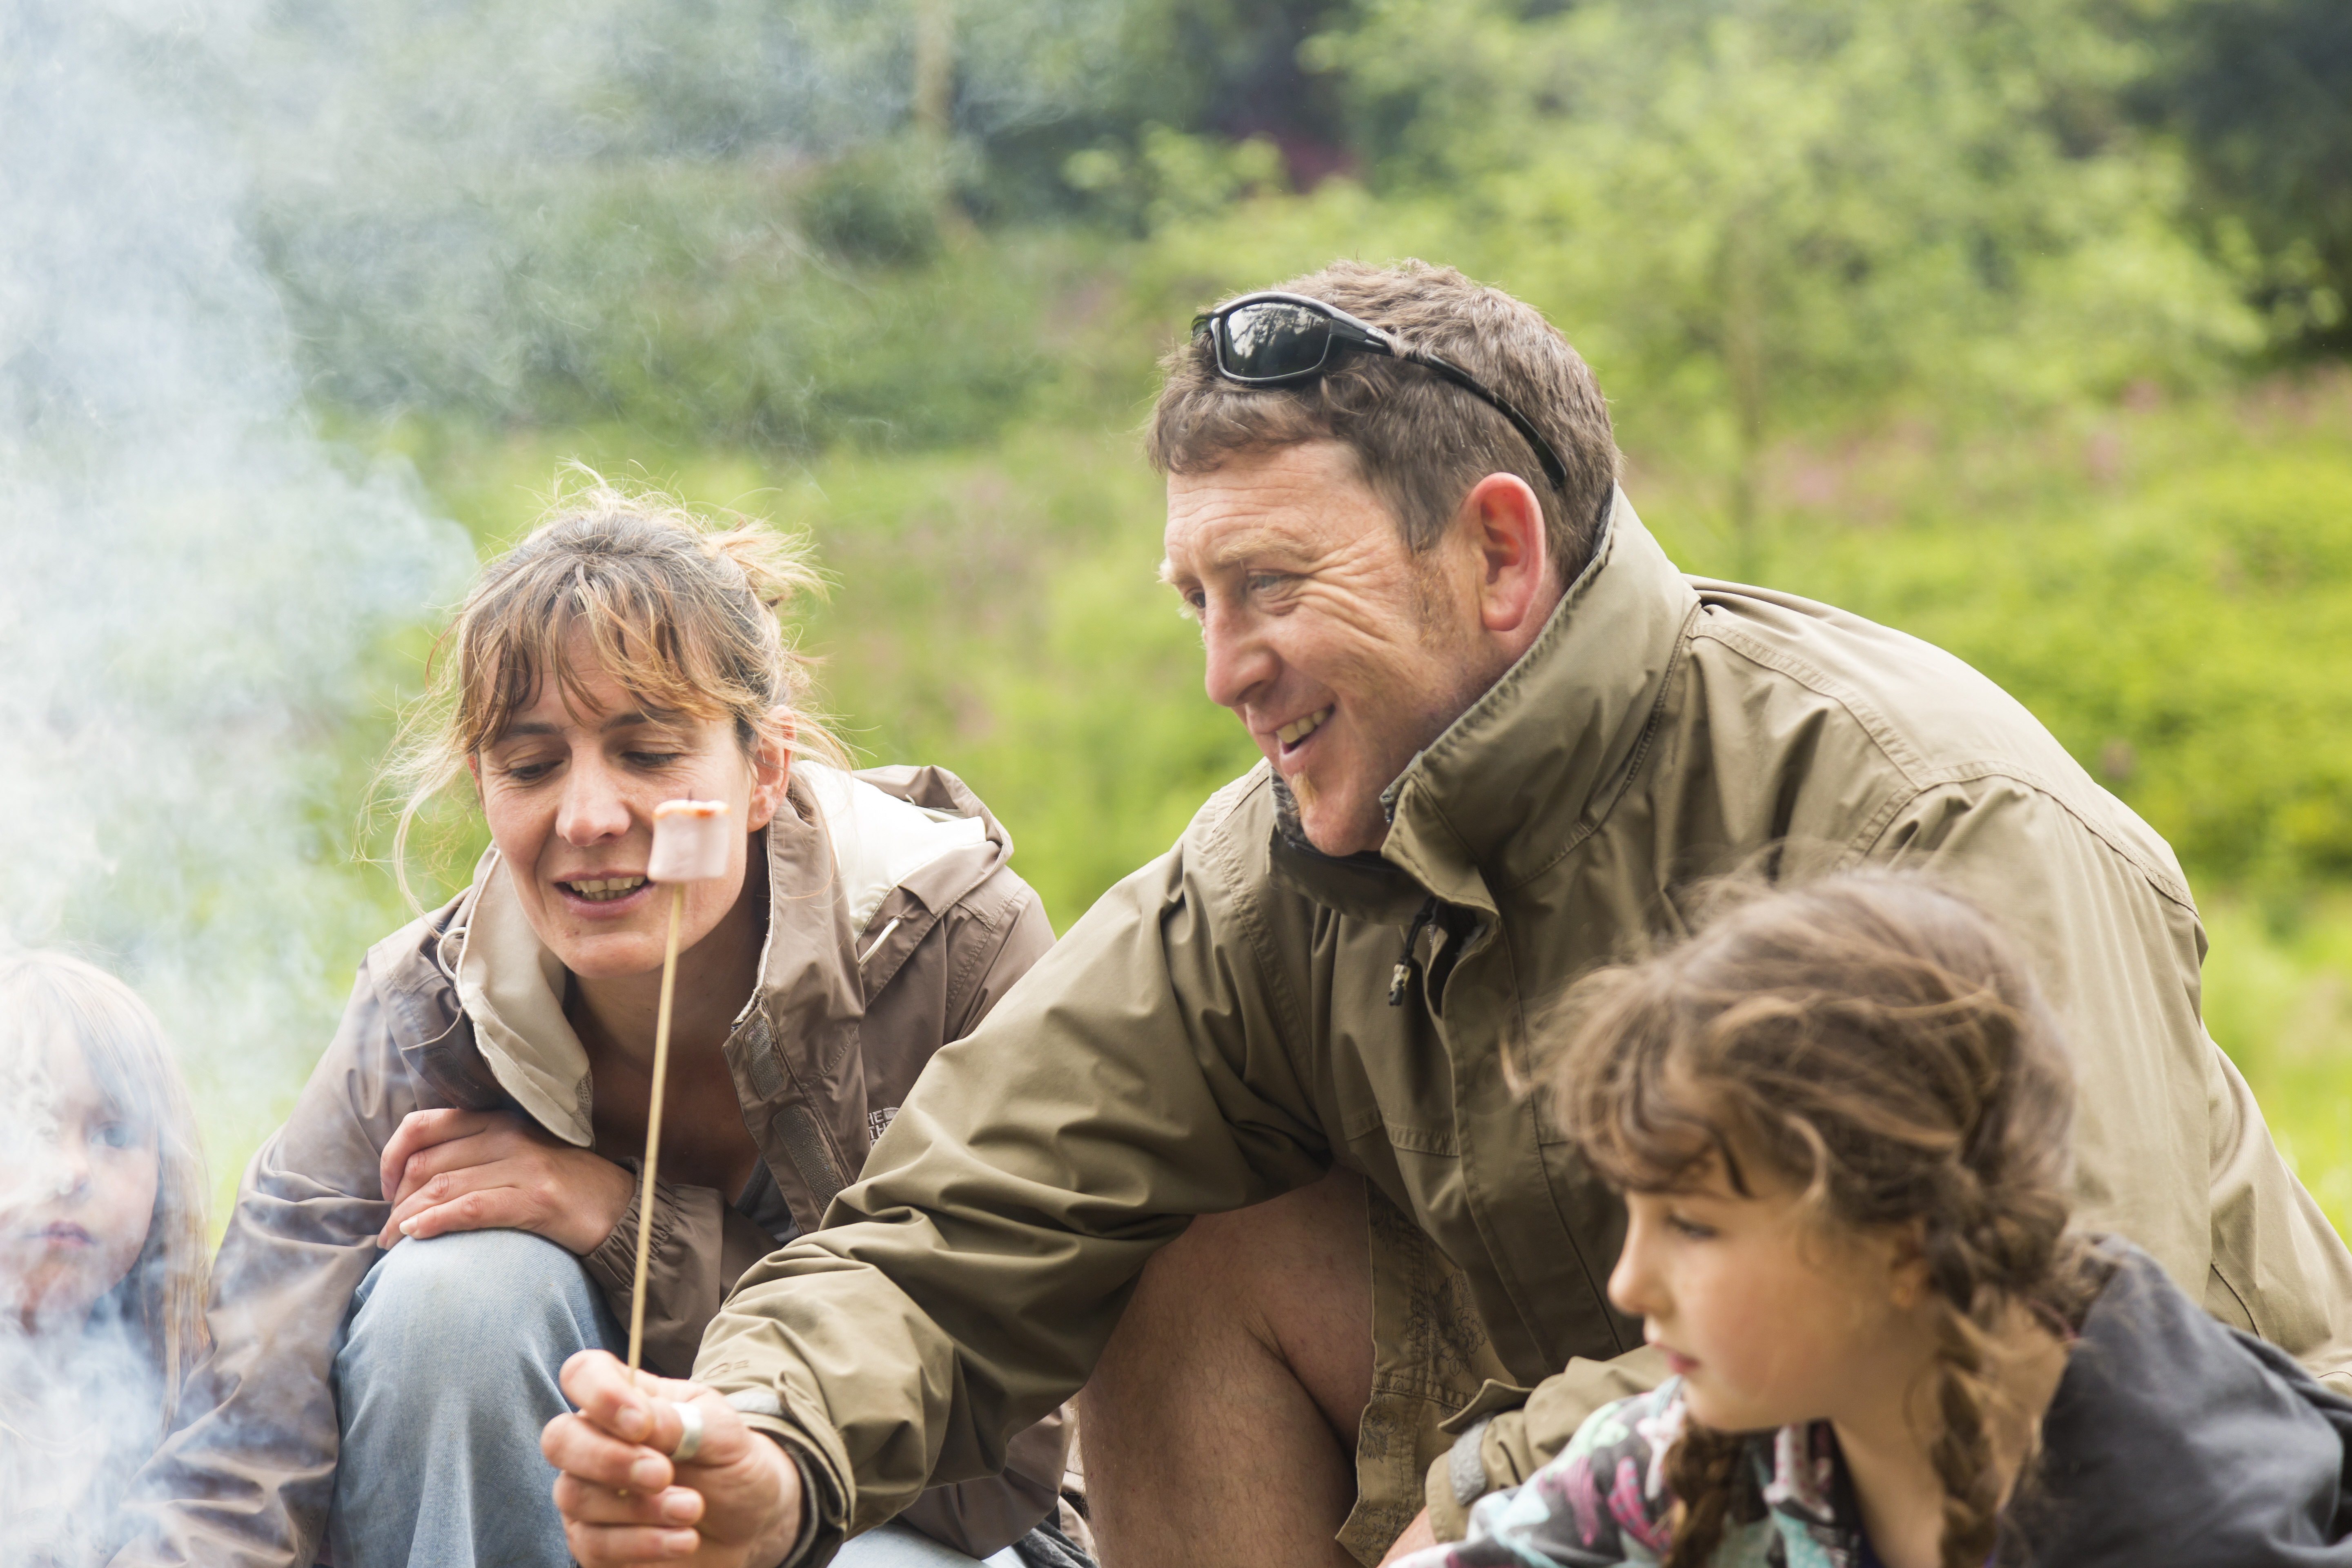 A family toasting marshmallows over an open camp fire at Colby Woodland Garden, Pembrokeshire. The garden is named after Welsh landowner John Colby (1751-1823), who originally came to the area in the 1790s to mine coal. Today, the woodland garden features a wild flower meadow, stream, and colourful walled garden.